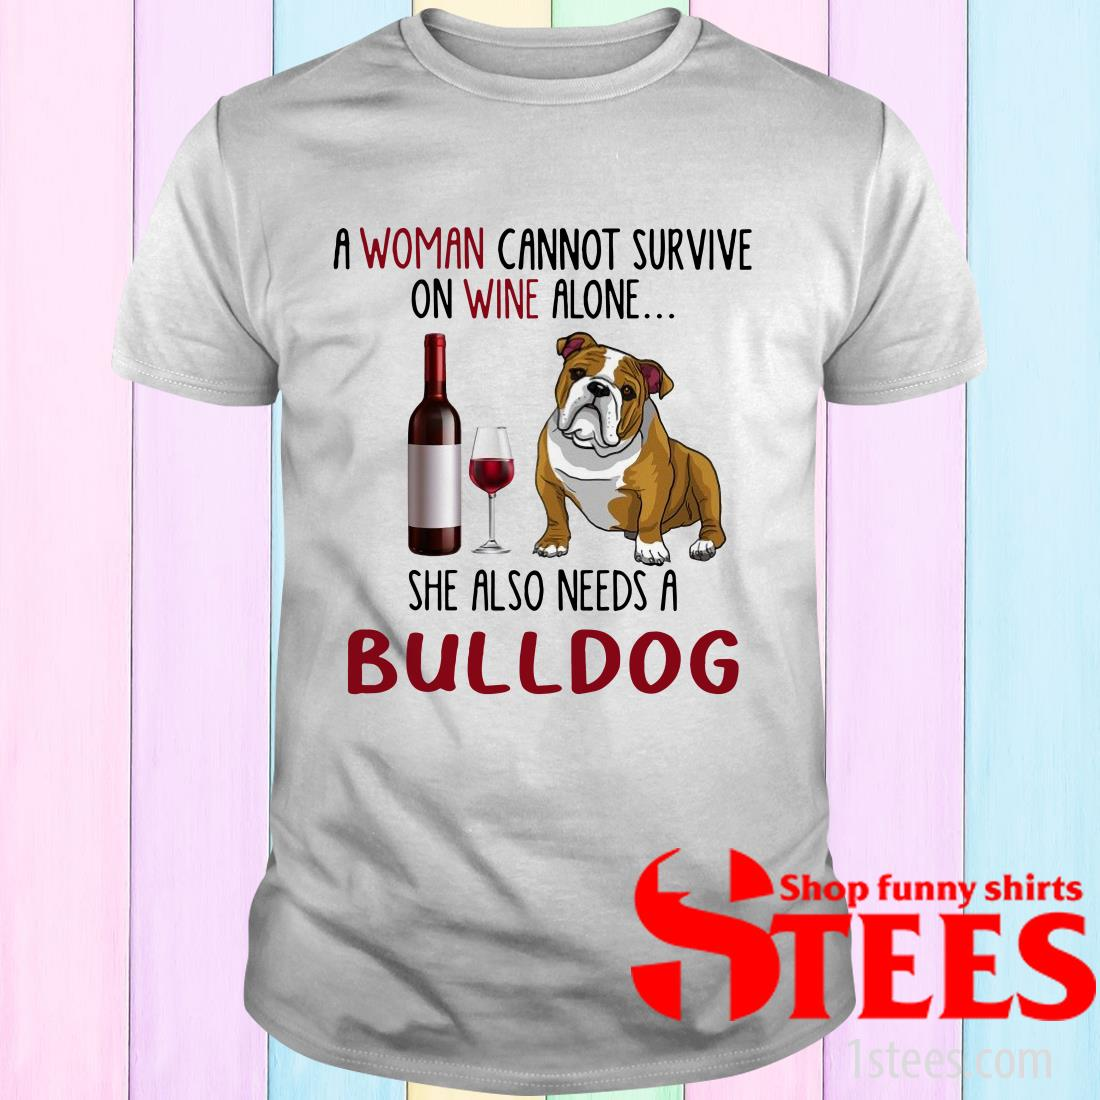 A Woman Cannot Survive On Wine Alone She Also Needs A Bulldog T-Shirt